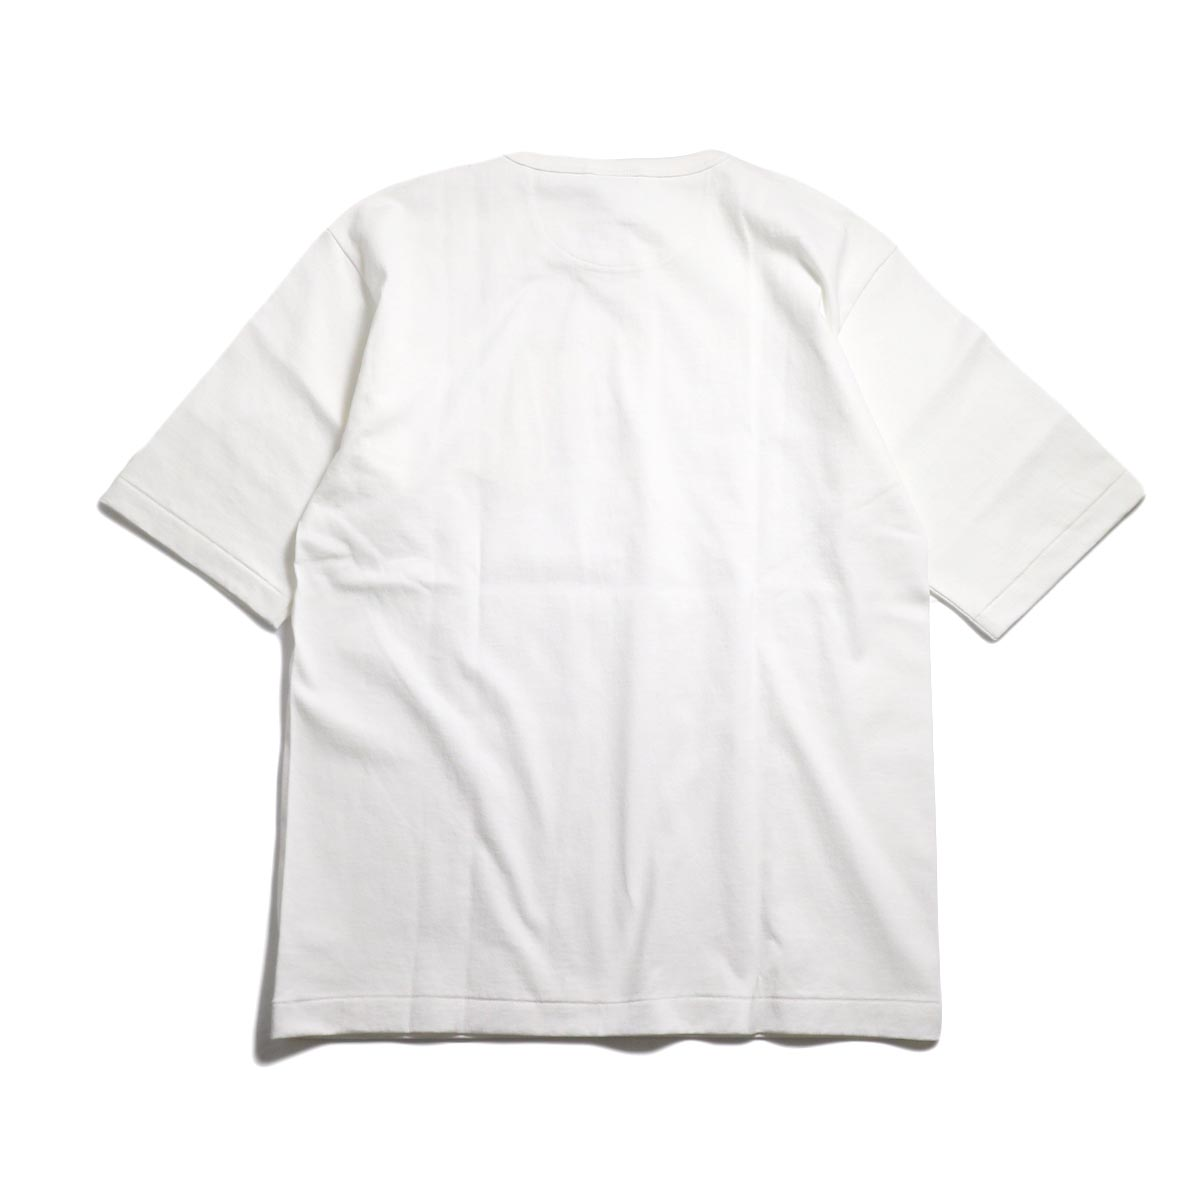 A VONTADE / 1/2 Sleeve Classic Henly Shirts -White 背面